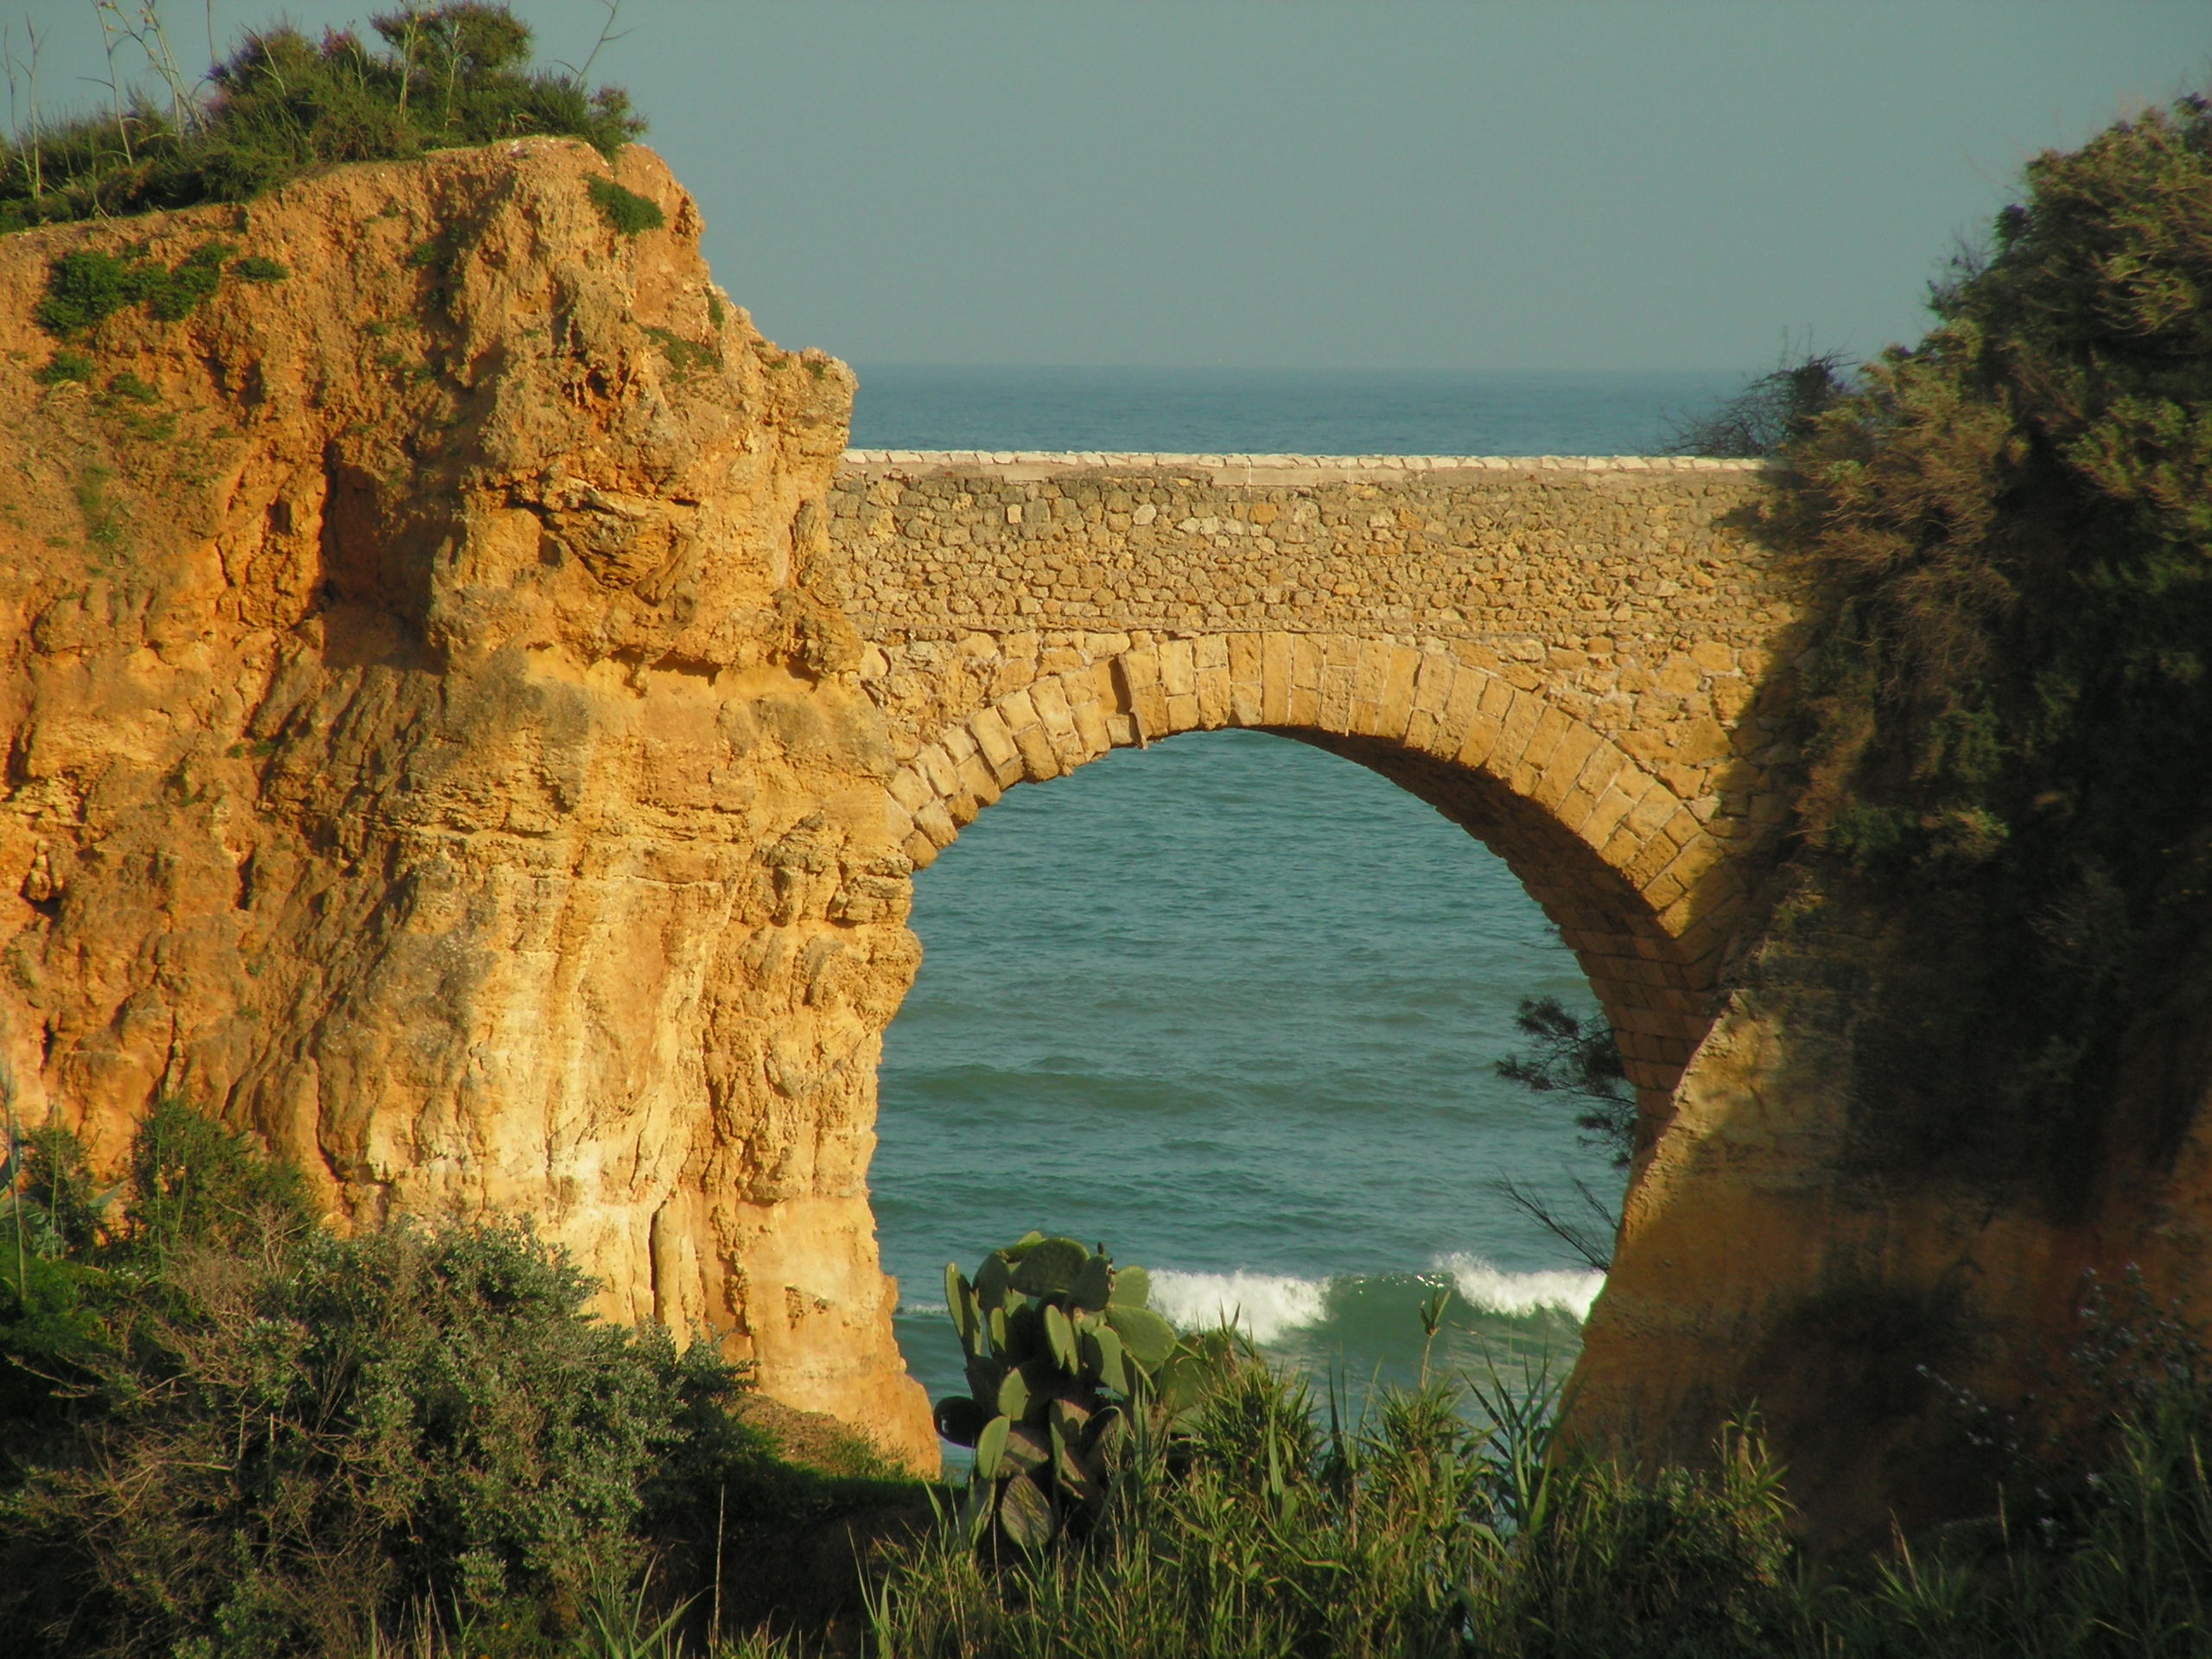 Beach arch in Lagos, Portugal